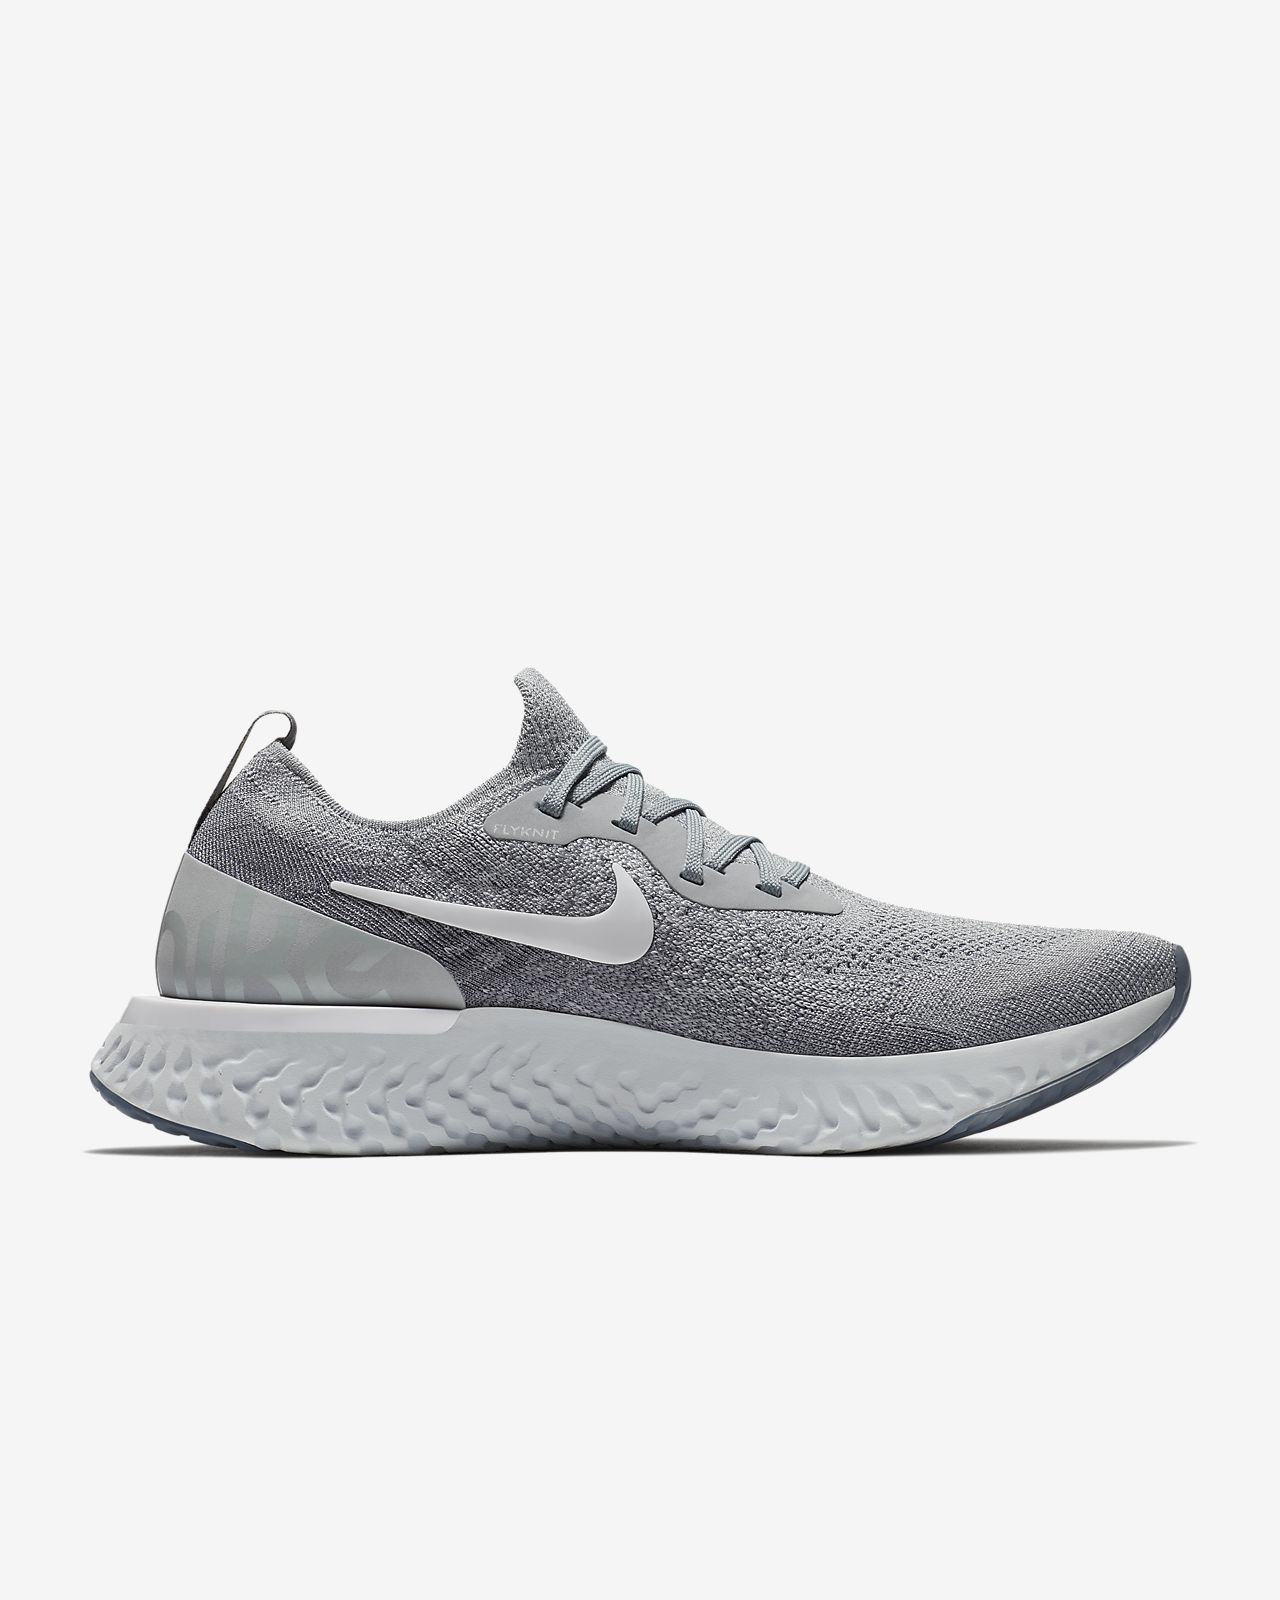 ... Nike Epic React Flyknit Men's Running Shoe